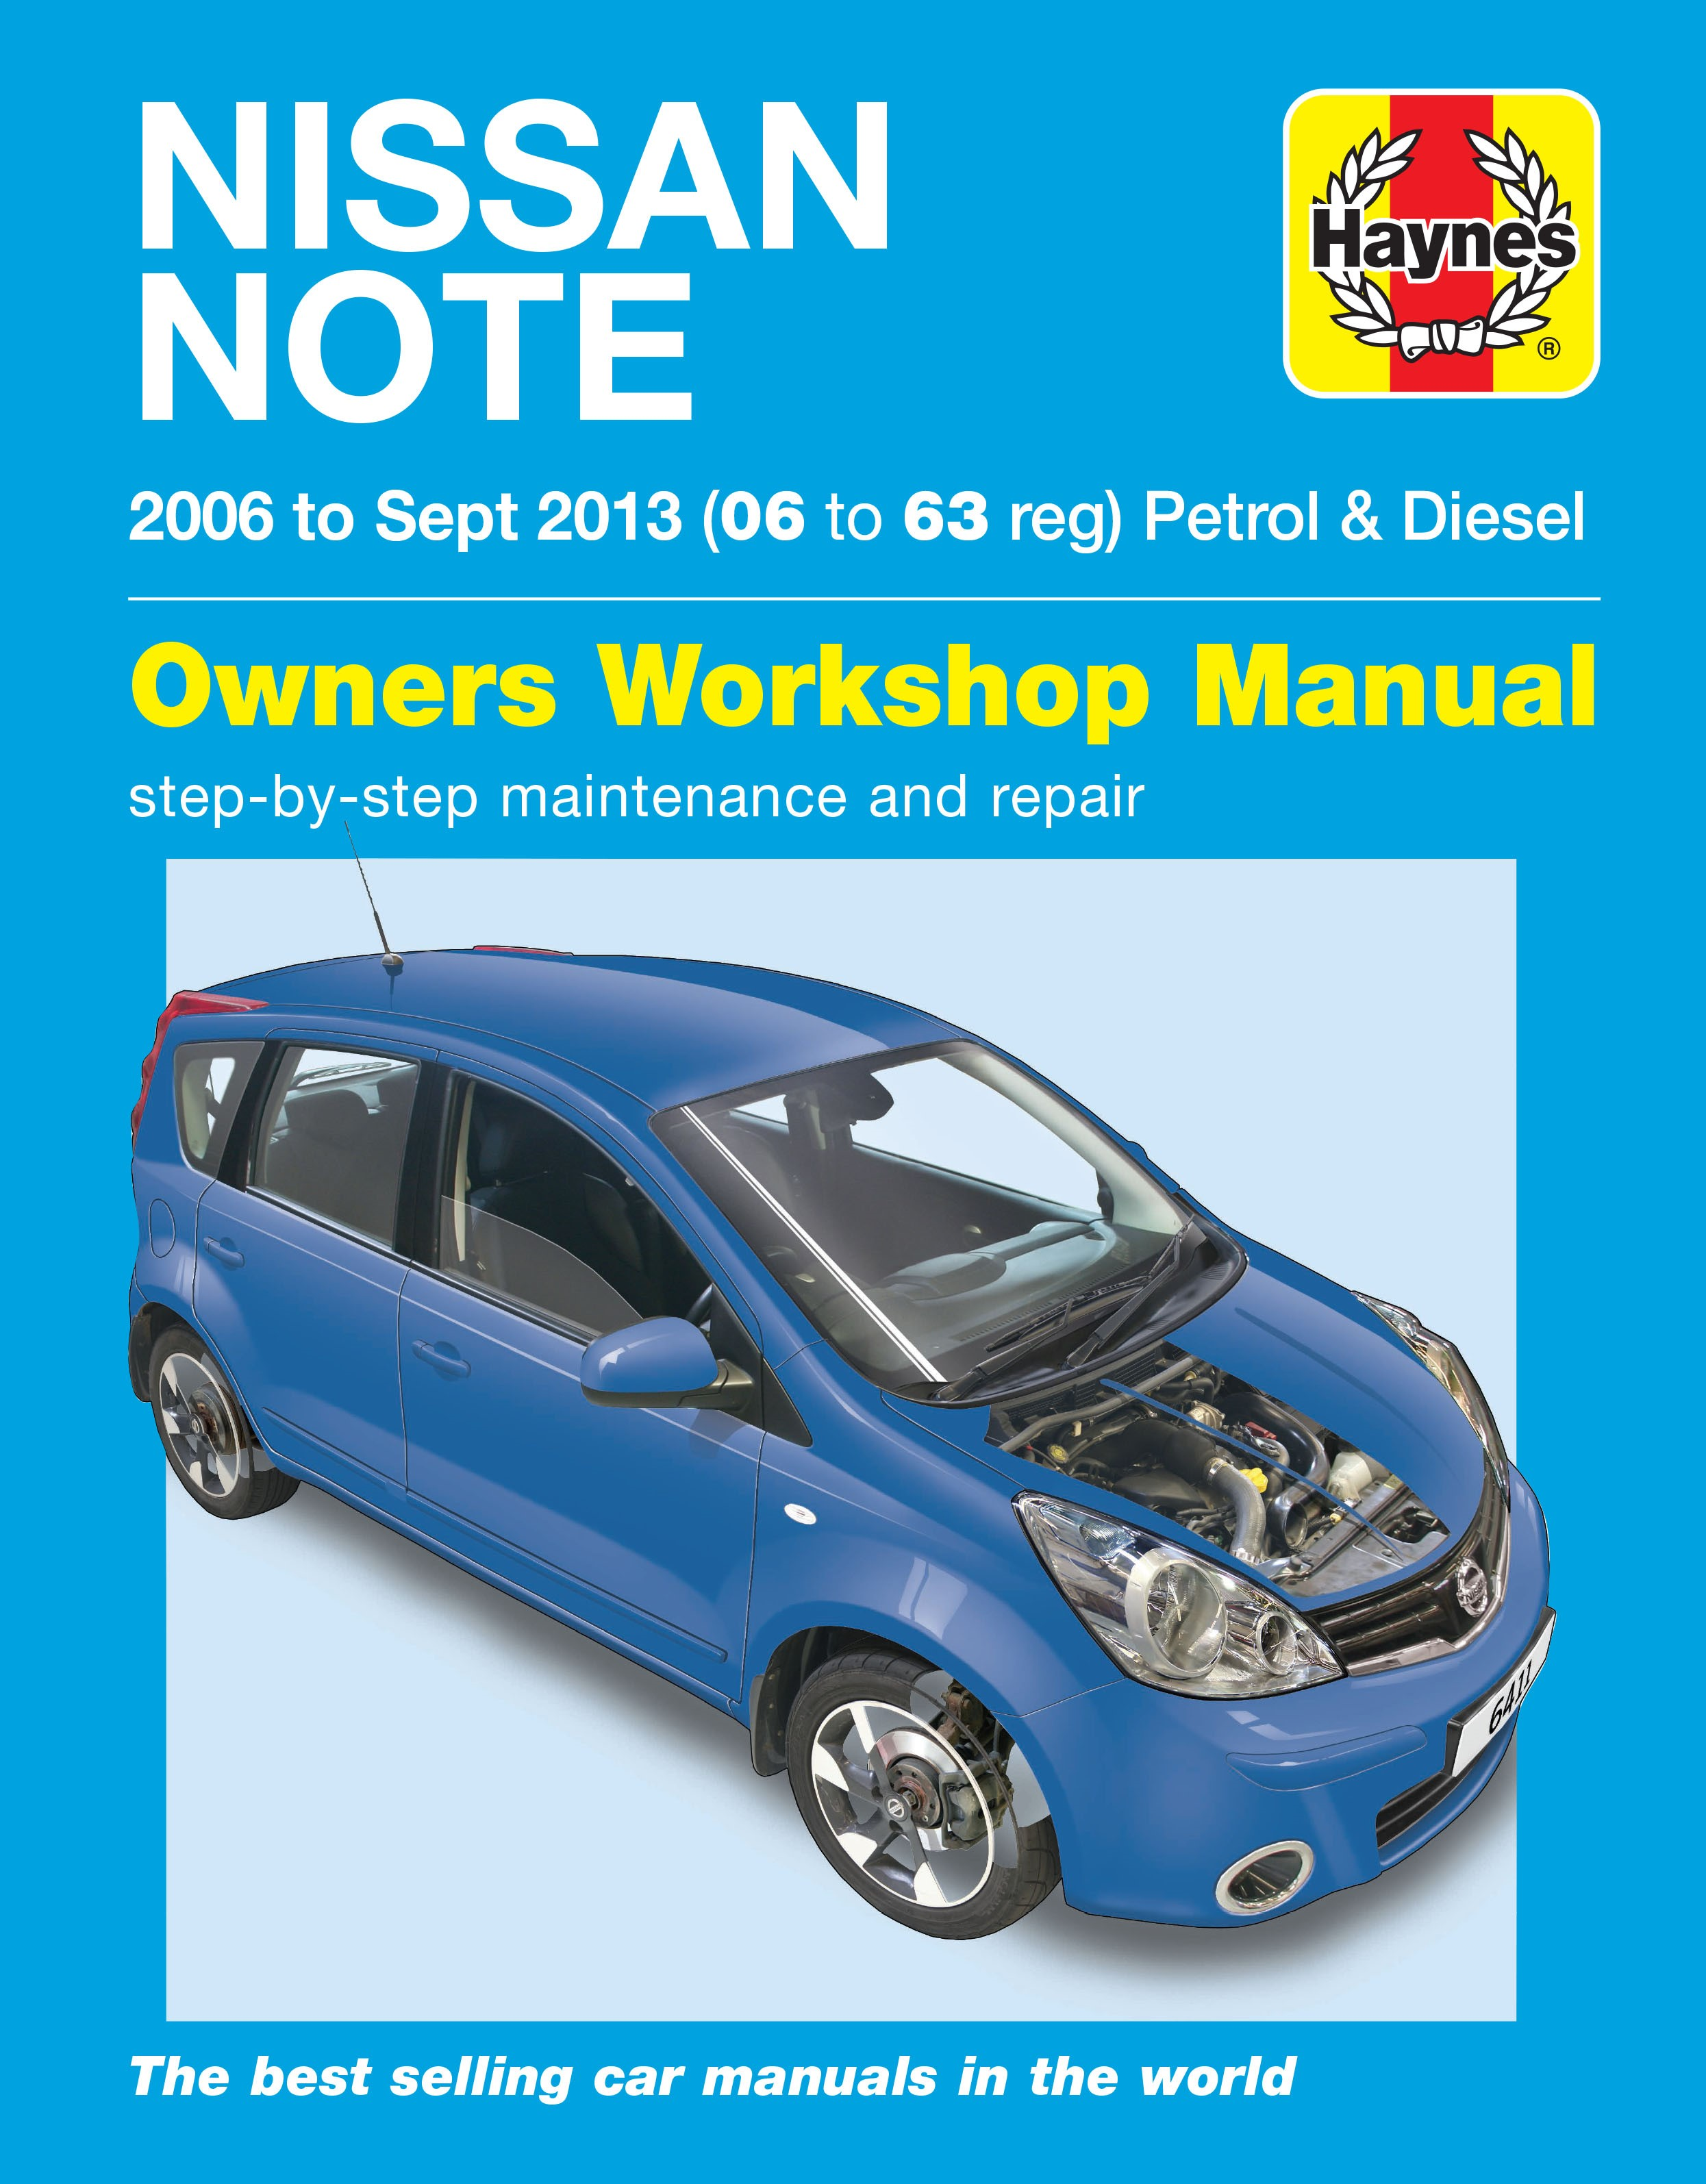 Nissan Note (2006 - 2013) Repair Manuals on